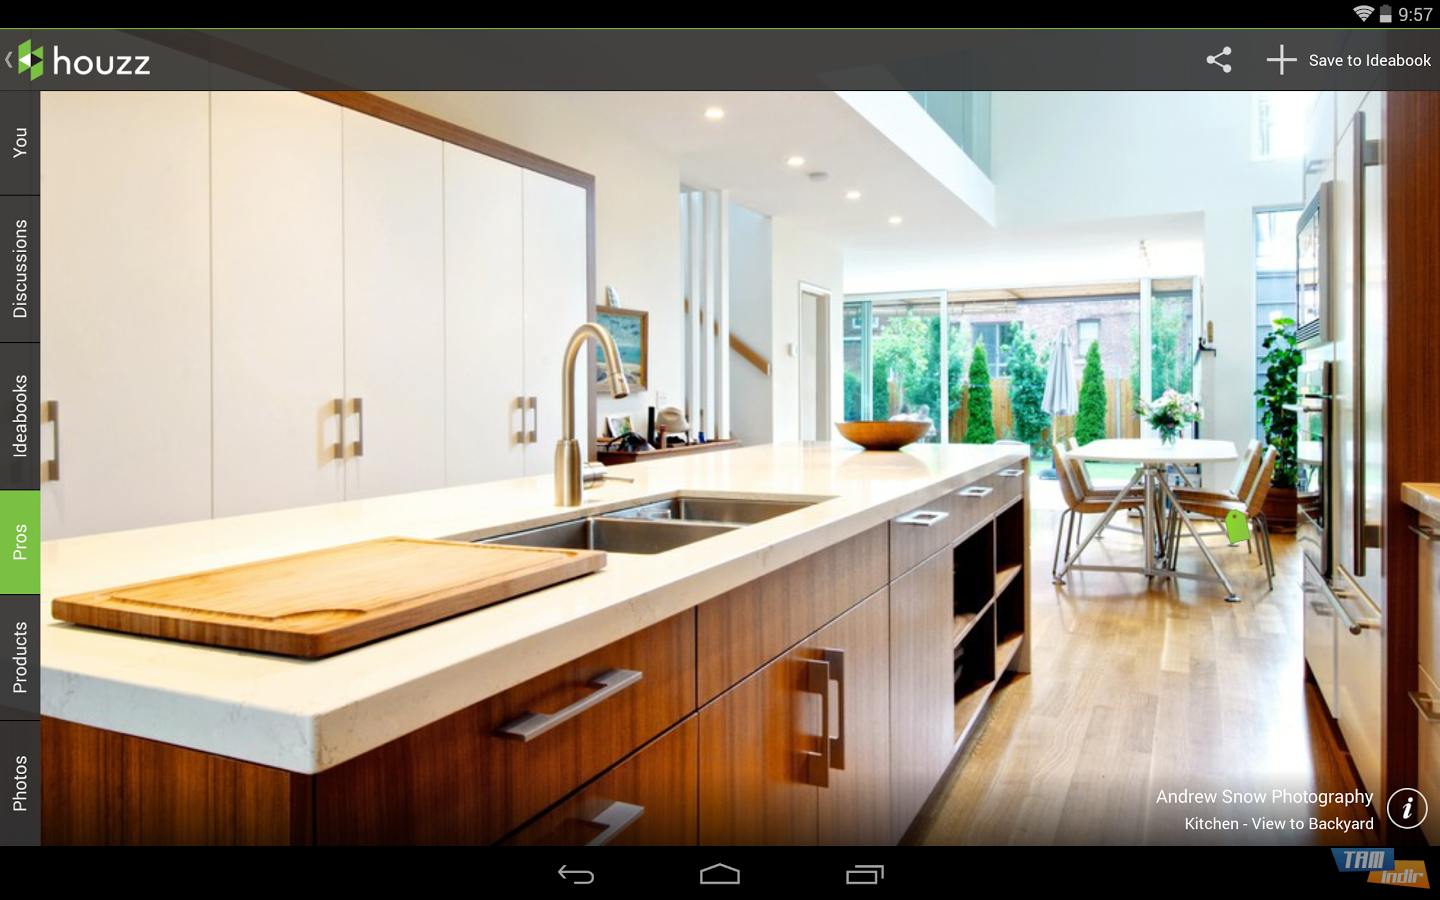 Houzz Interior Design Ideas Ndir Android I 231 In 231 Dizayn